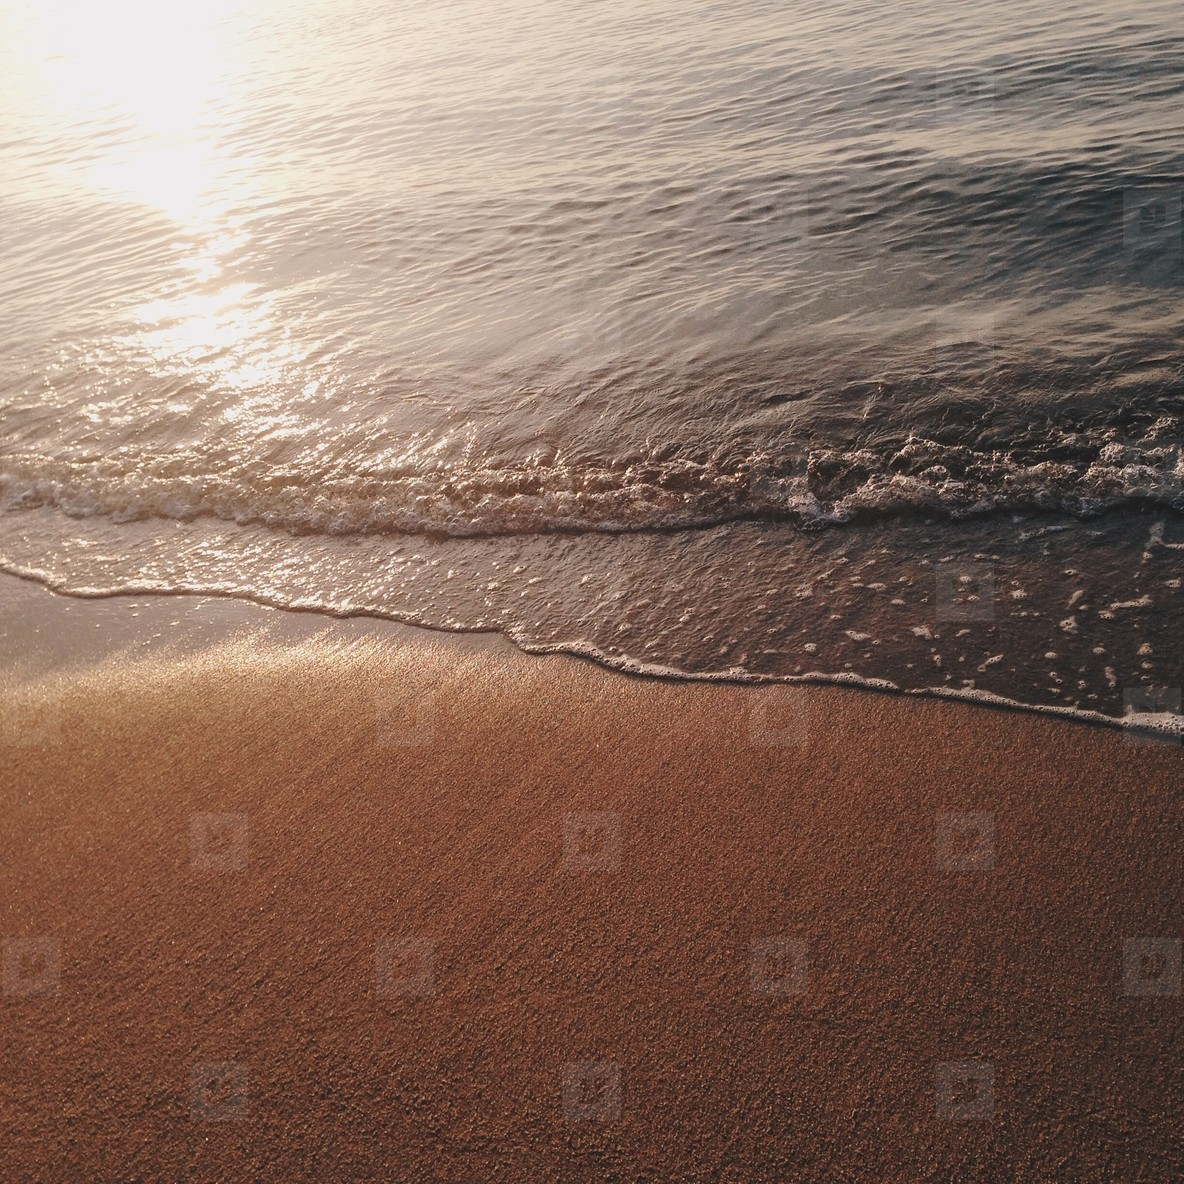 Soft wave of the sea on the sand